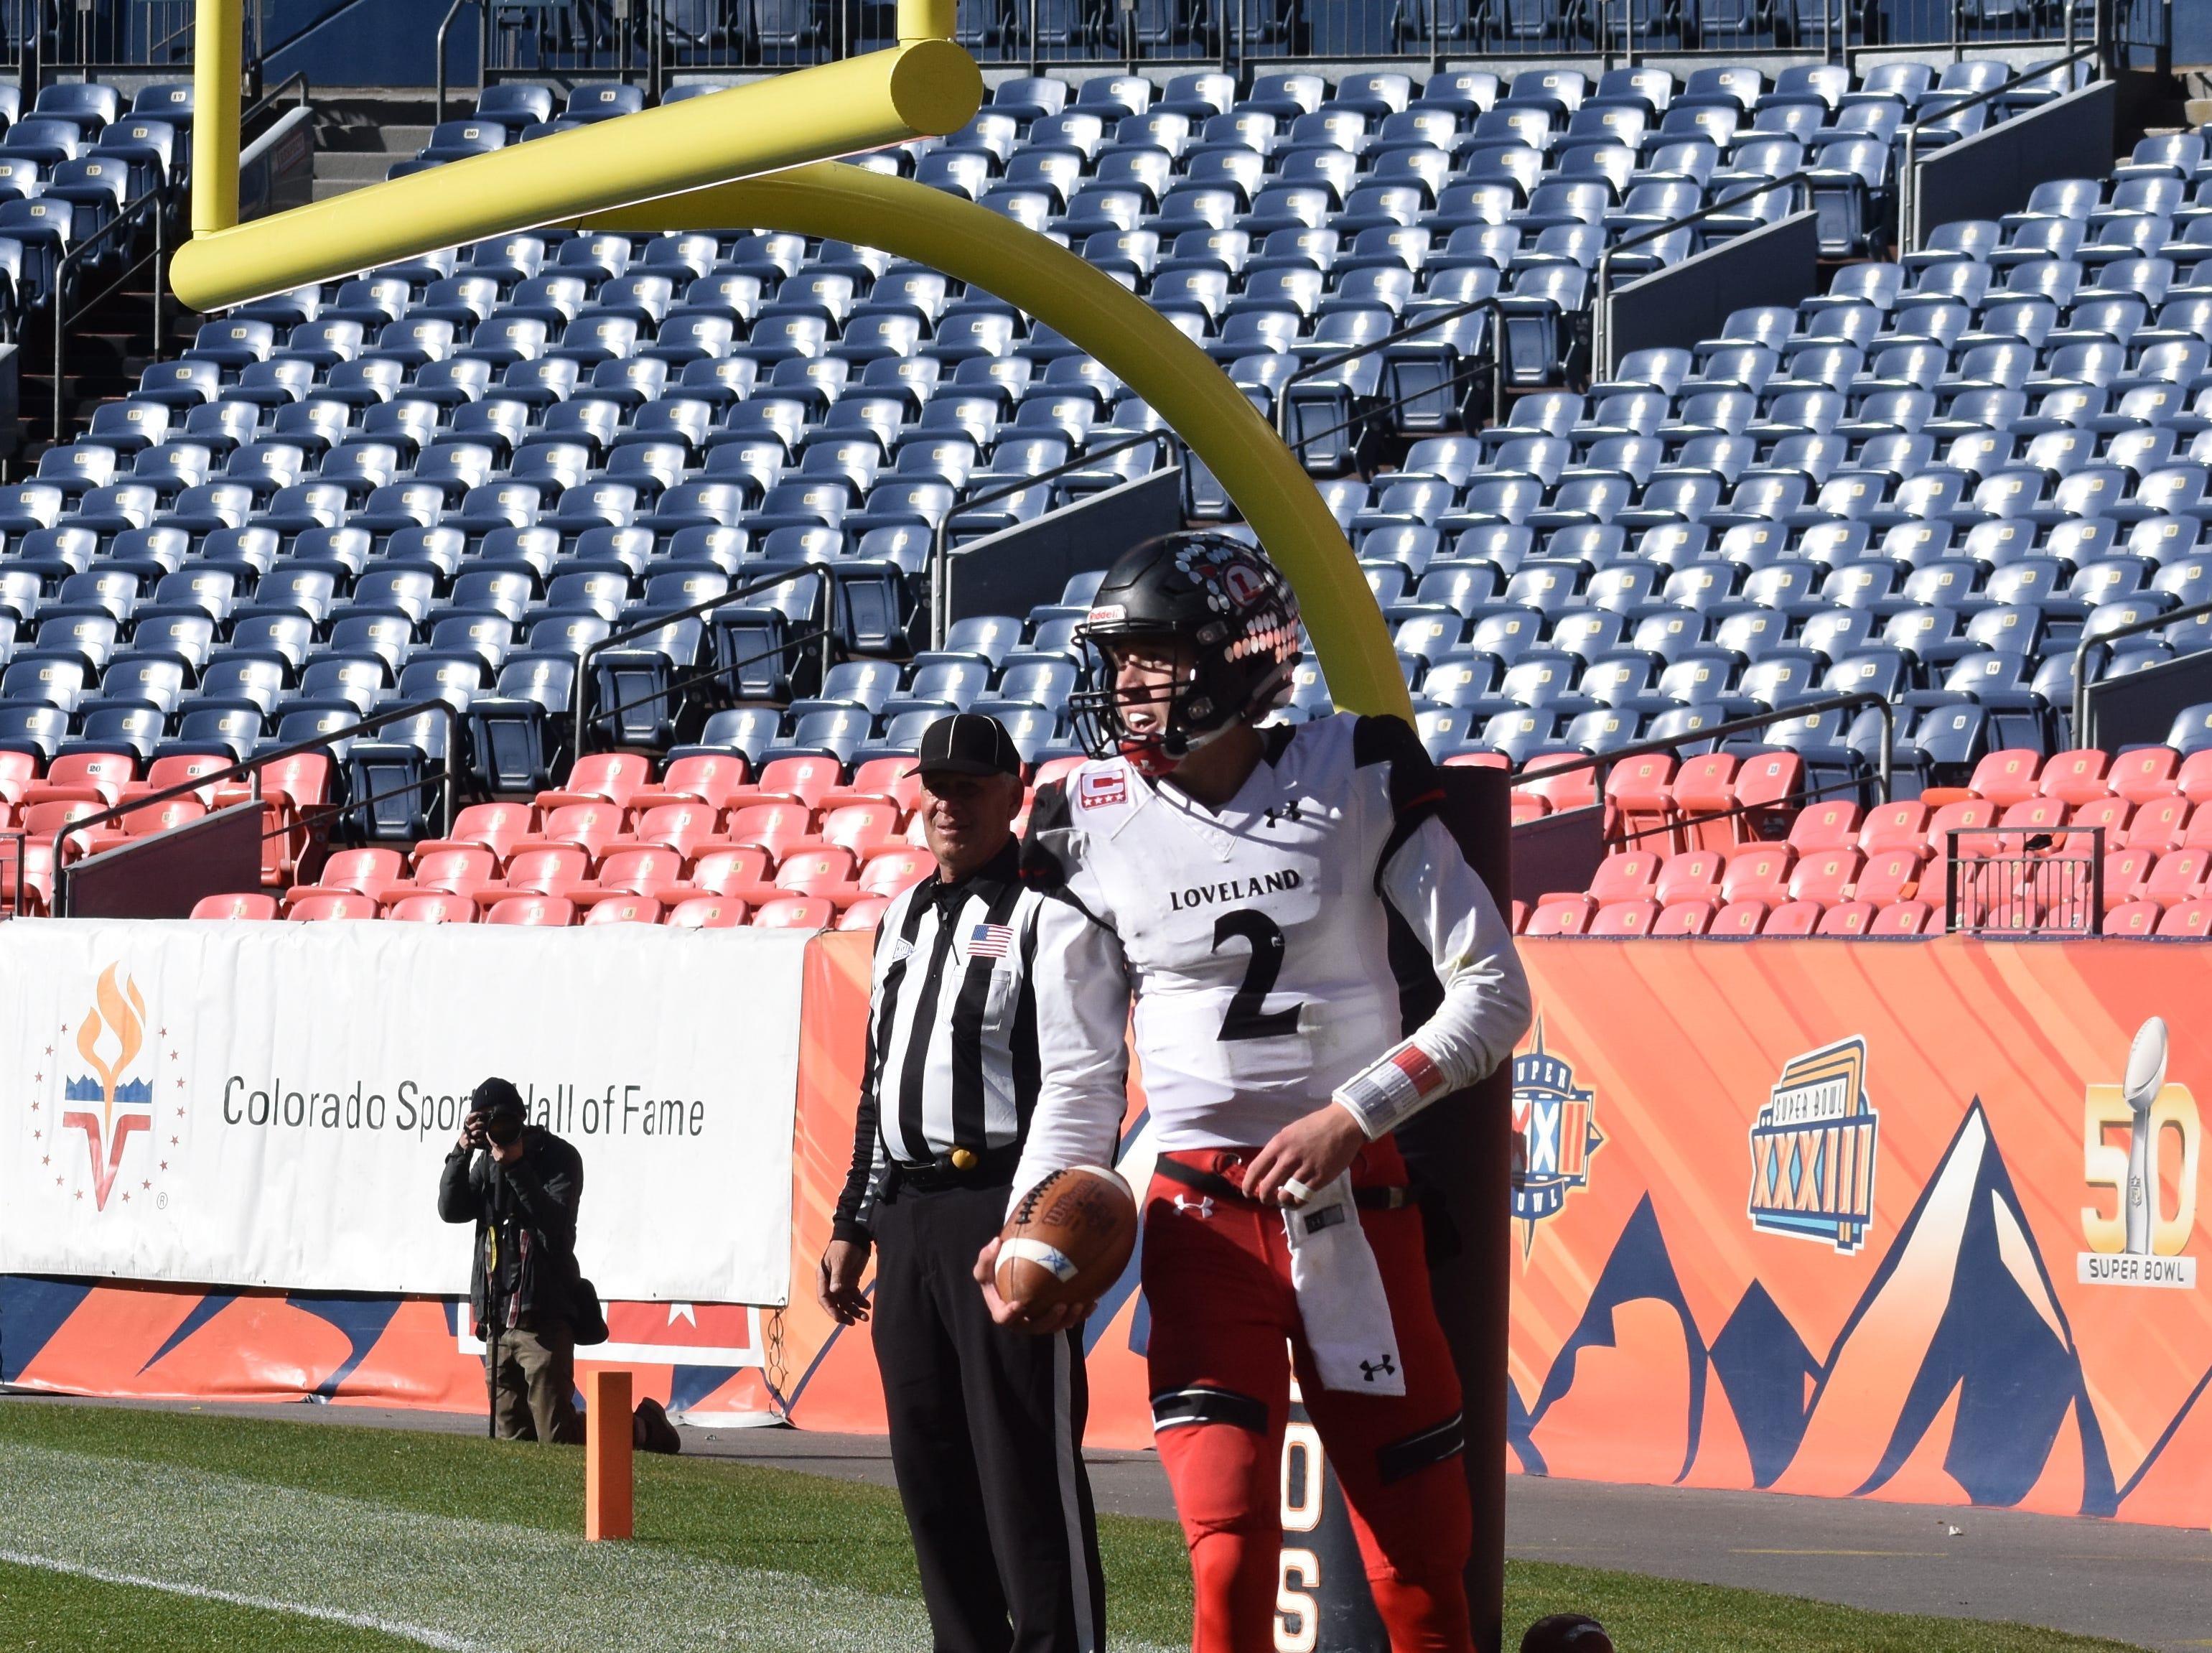 Loveland High quarterback Ryan Kinney stands in the back of the end zone after the third of his five touchdown runs in Saturday's Class 4A state championship game in Denver. Kinney was named the game's MVP.